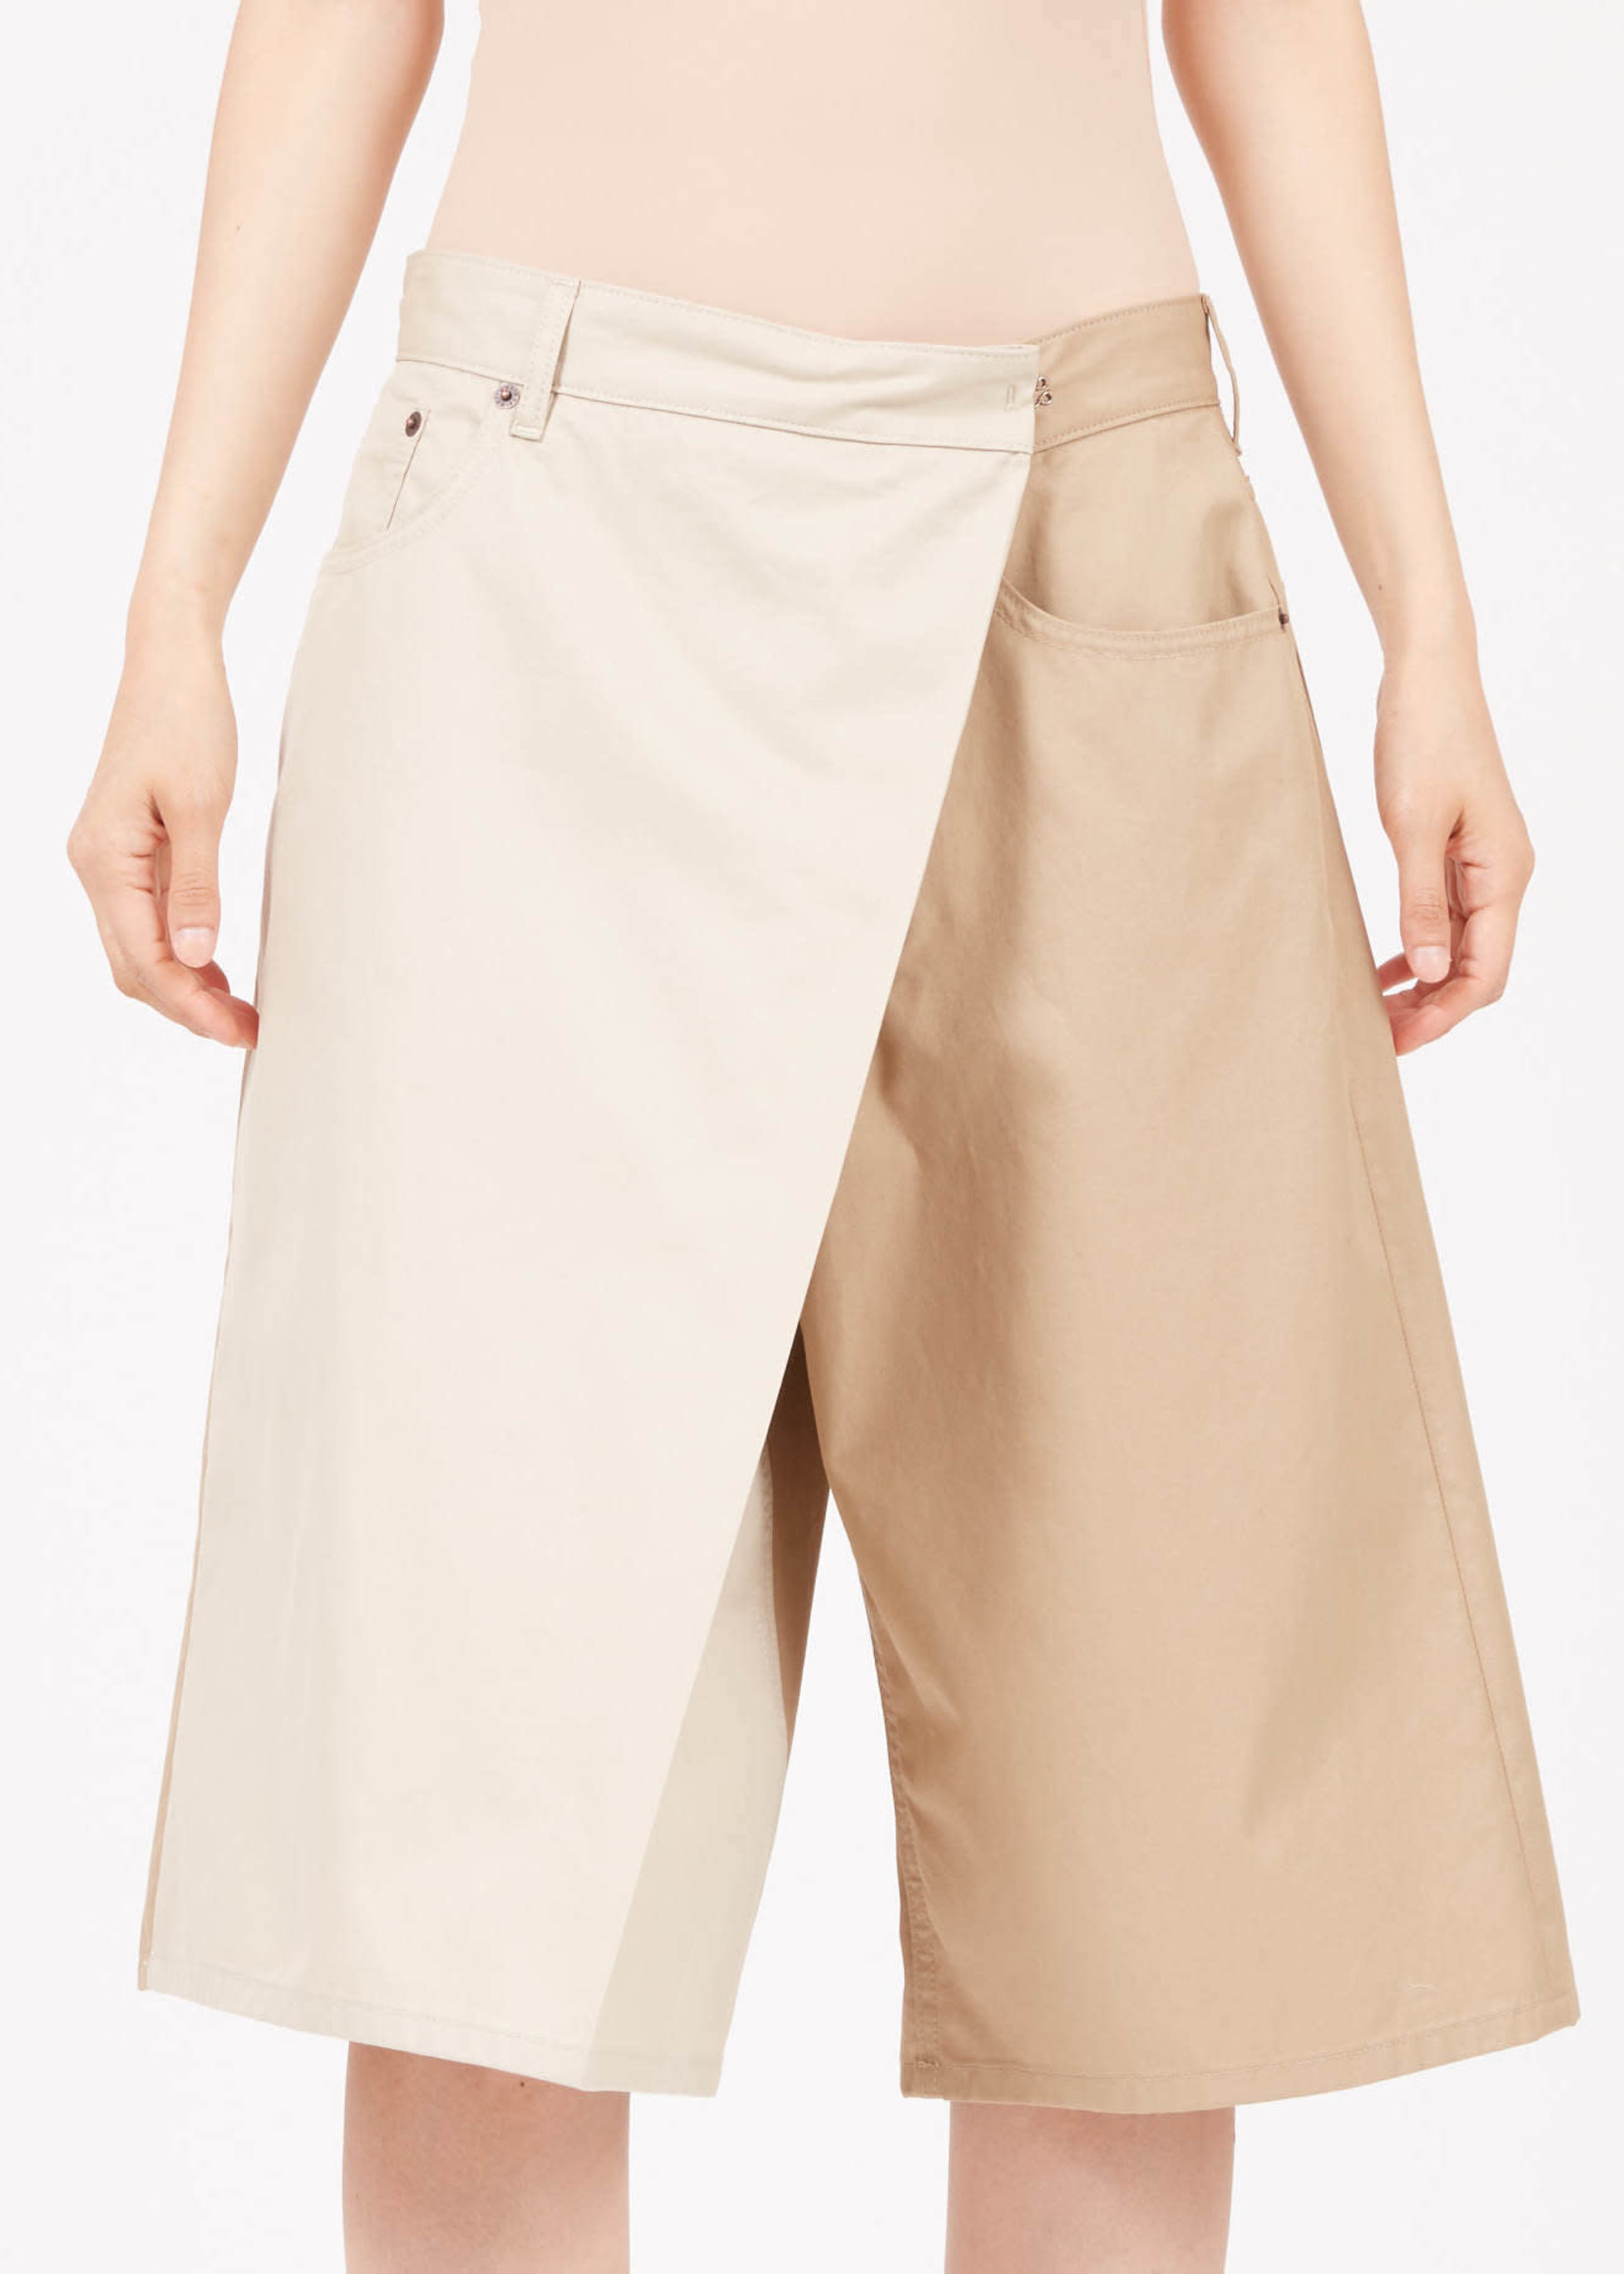 MM6 MAISON MARGIELA Fold Over two-tone shorts in beige